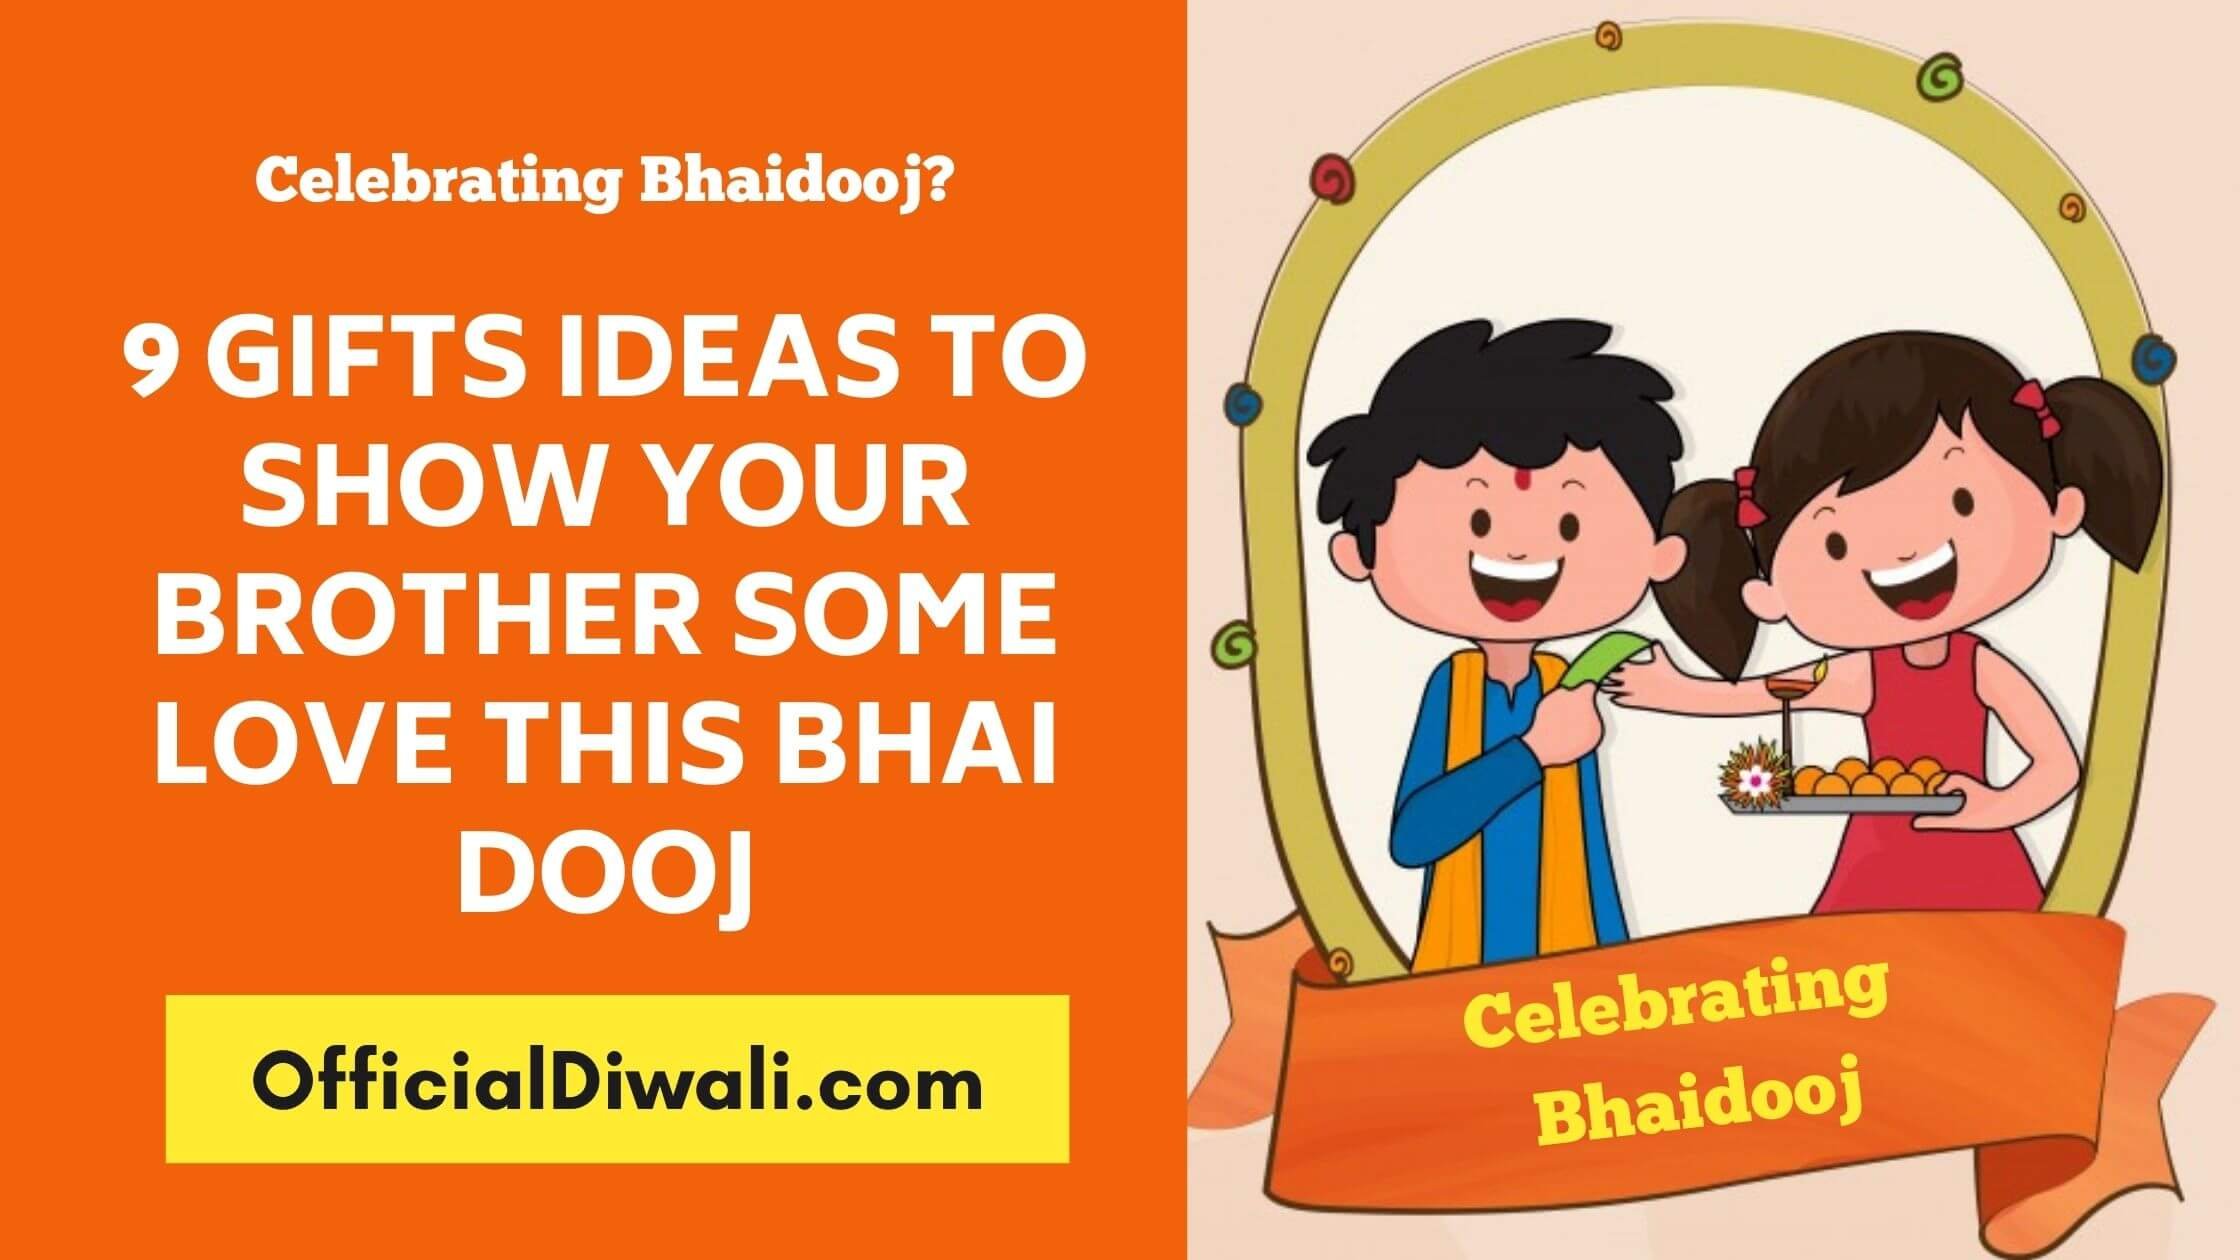 Celebrating Bhaidooj? 9 Gifts Ideas To Show Your Brother Some Love This Bhai Dooj